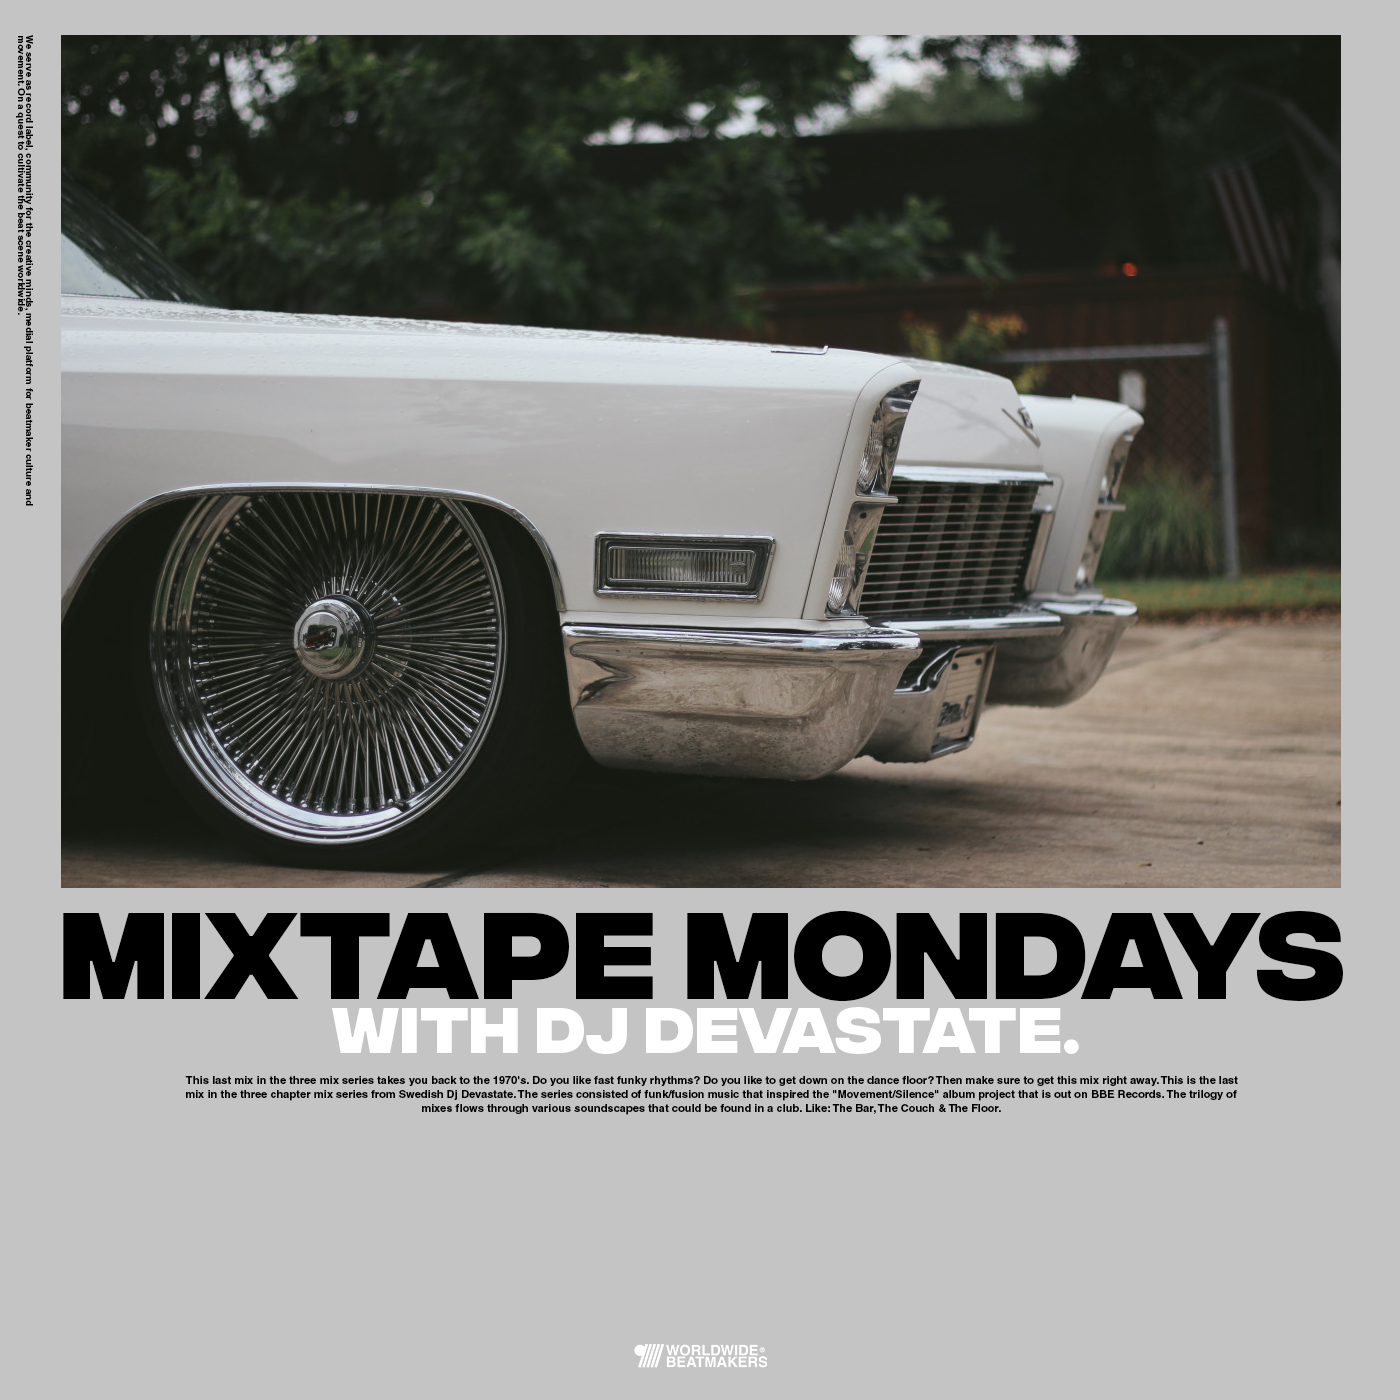 Mixtape Mondays - This is DJ Devastate: The Floor.